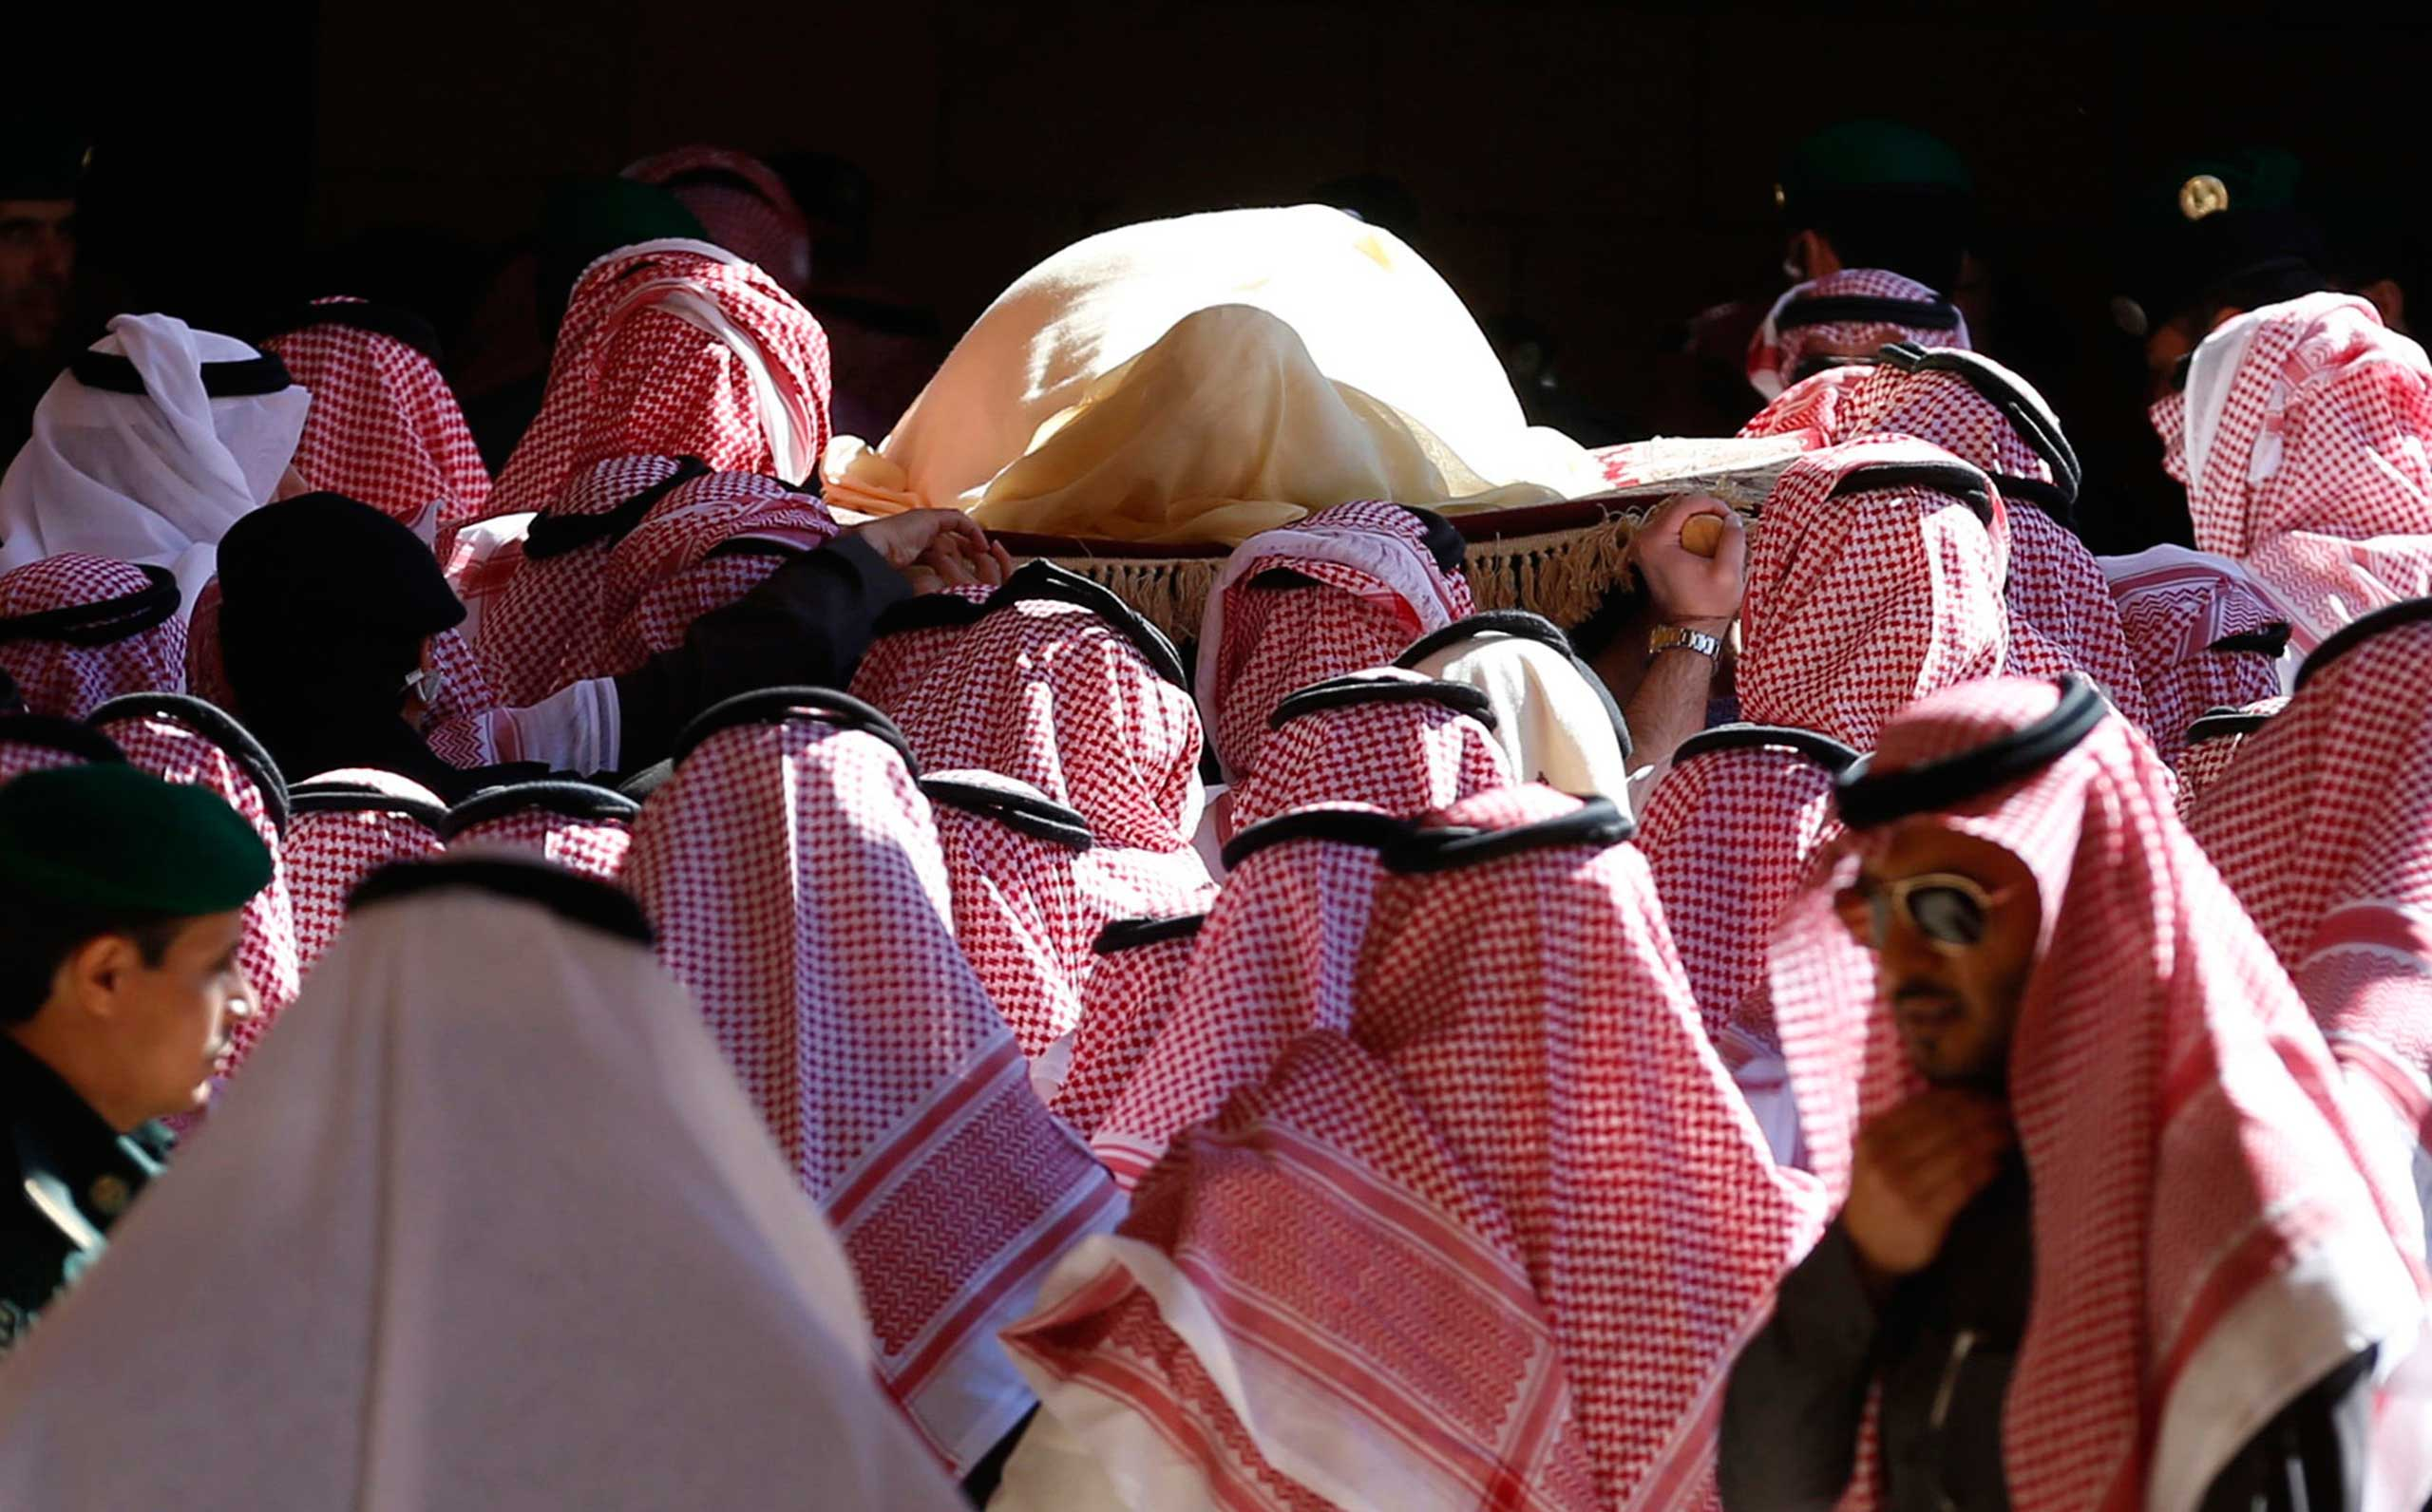 The body of Saudi King Abdullah bin Abdul Aziz is carried during his funeral at Imam Turki Bin Abdullah Grand Mosque, in Riyadh, Jan. 23, 2015.